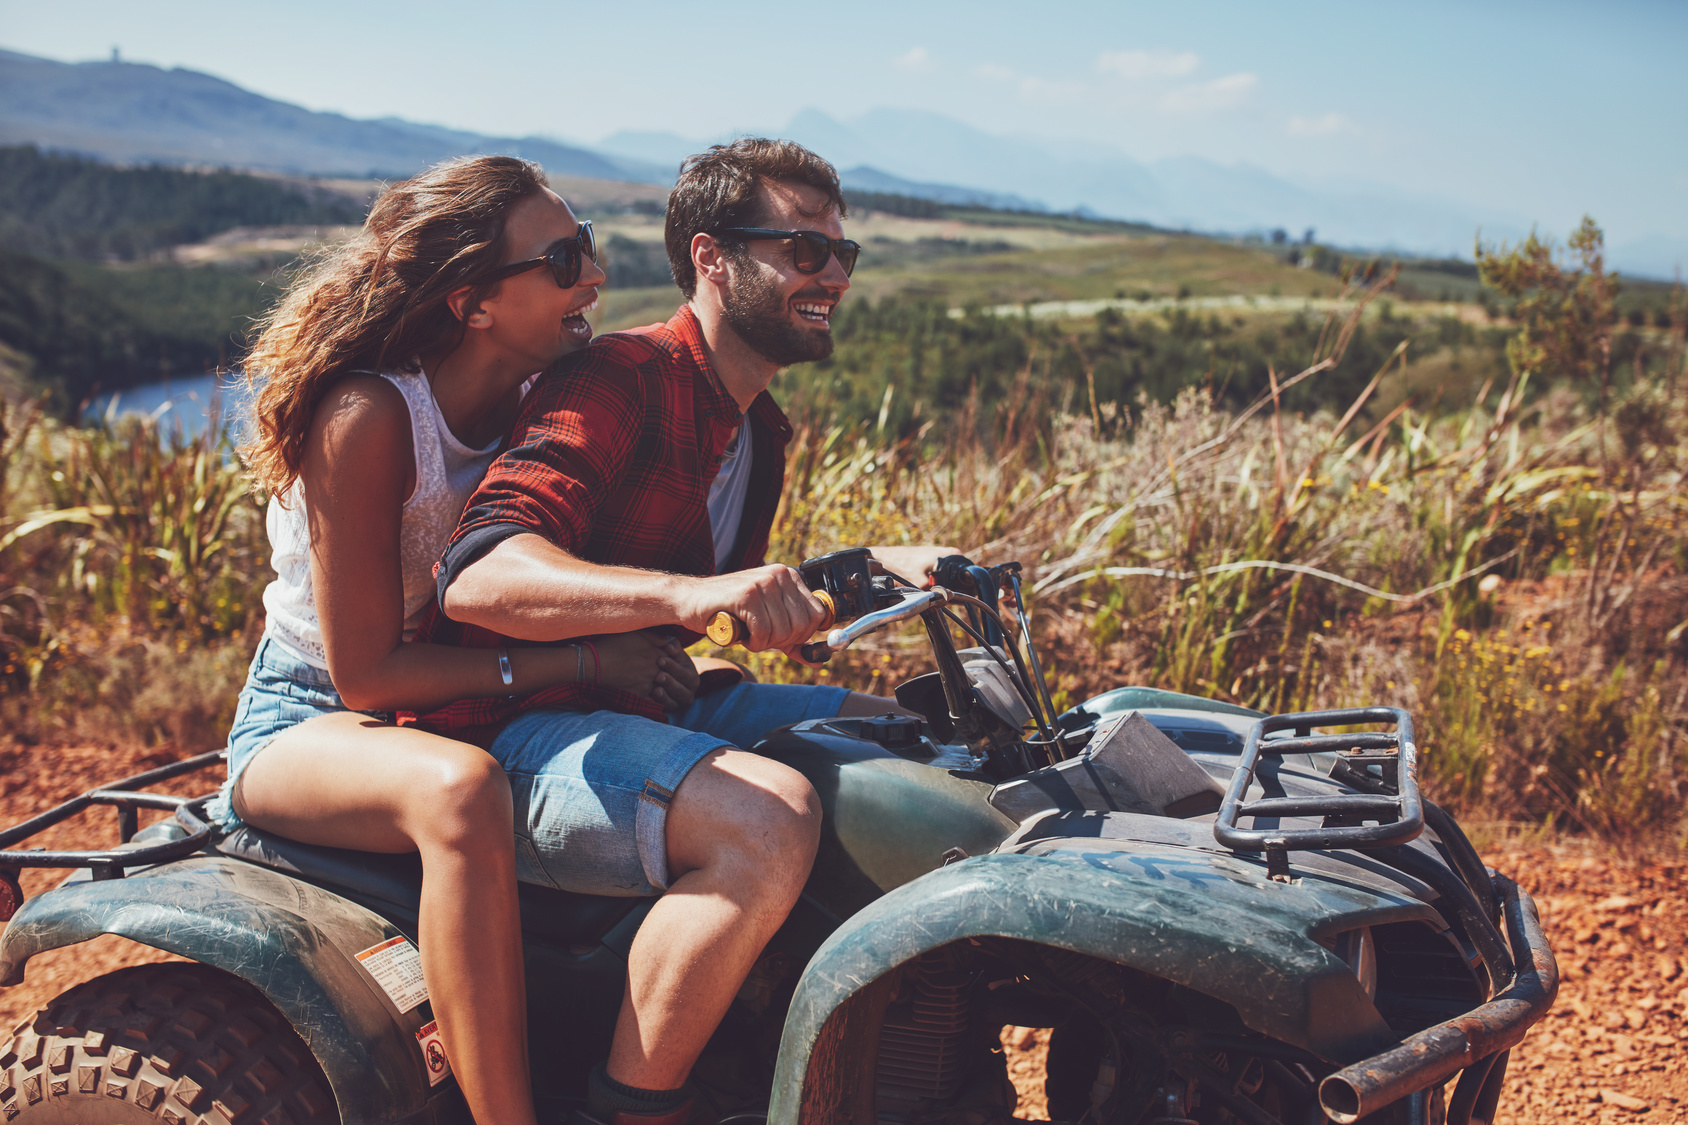 Couple outdoors on an ATV